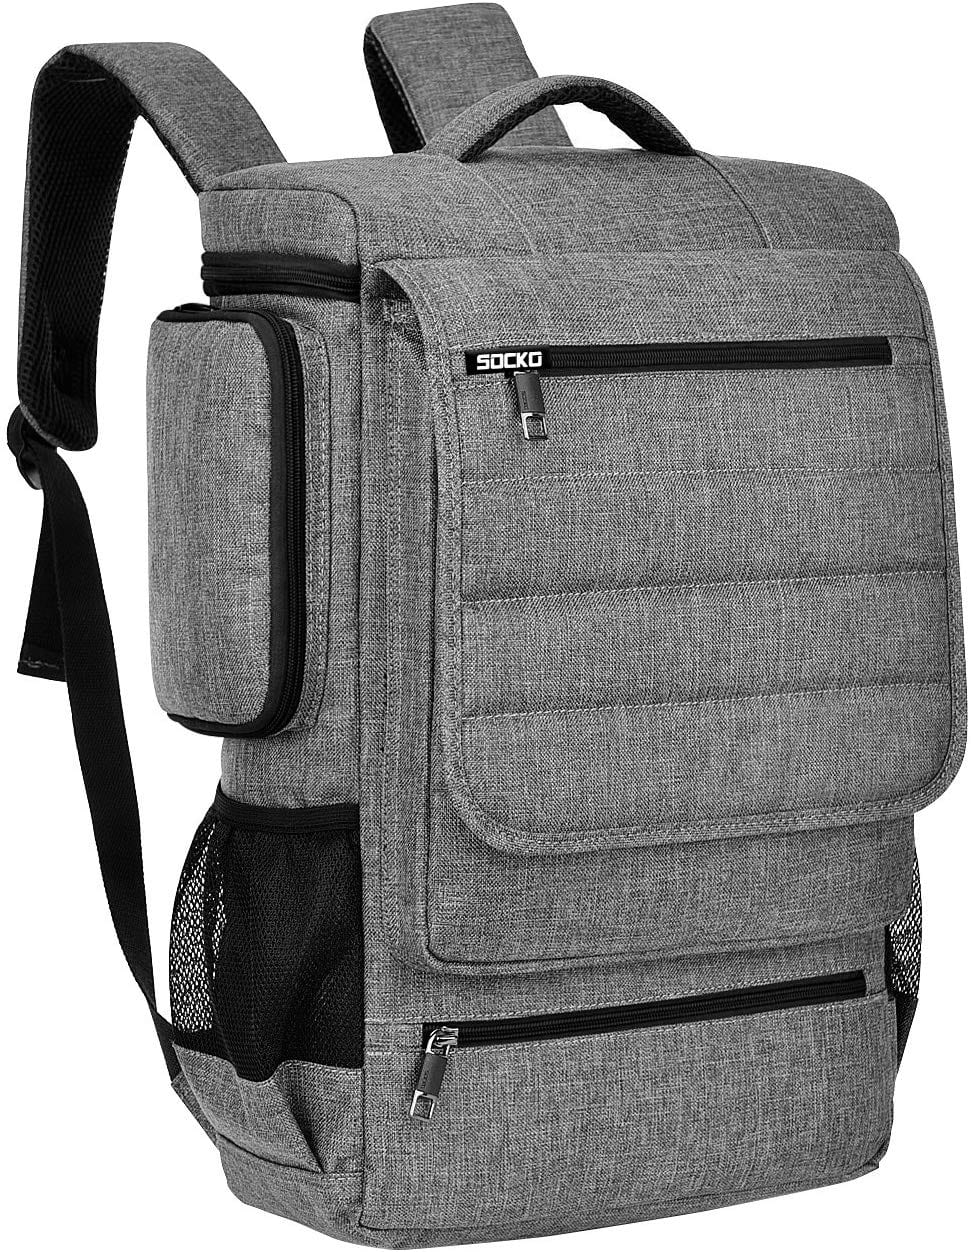 Boxy gray backpack with black accents (Best Teacher Backpacks)